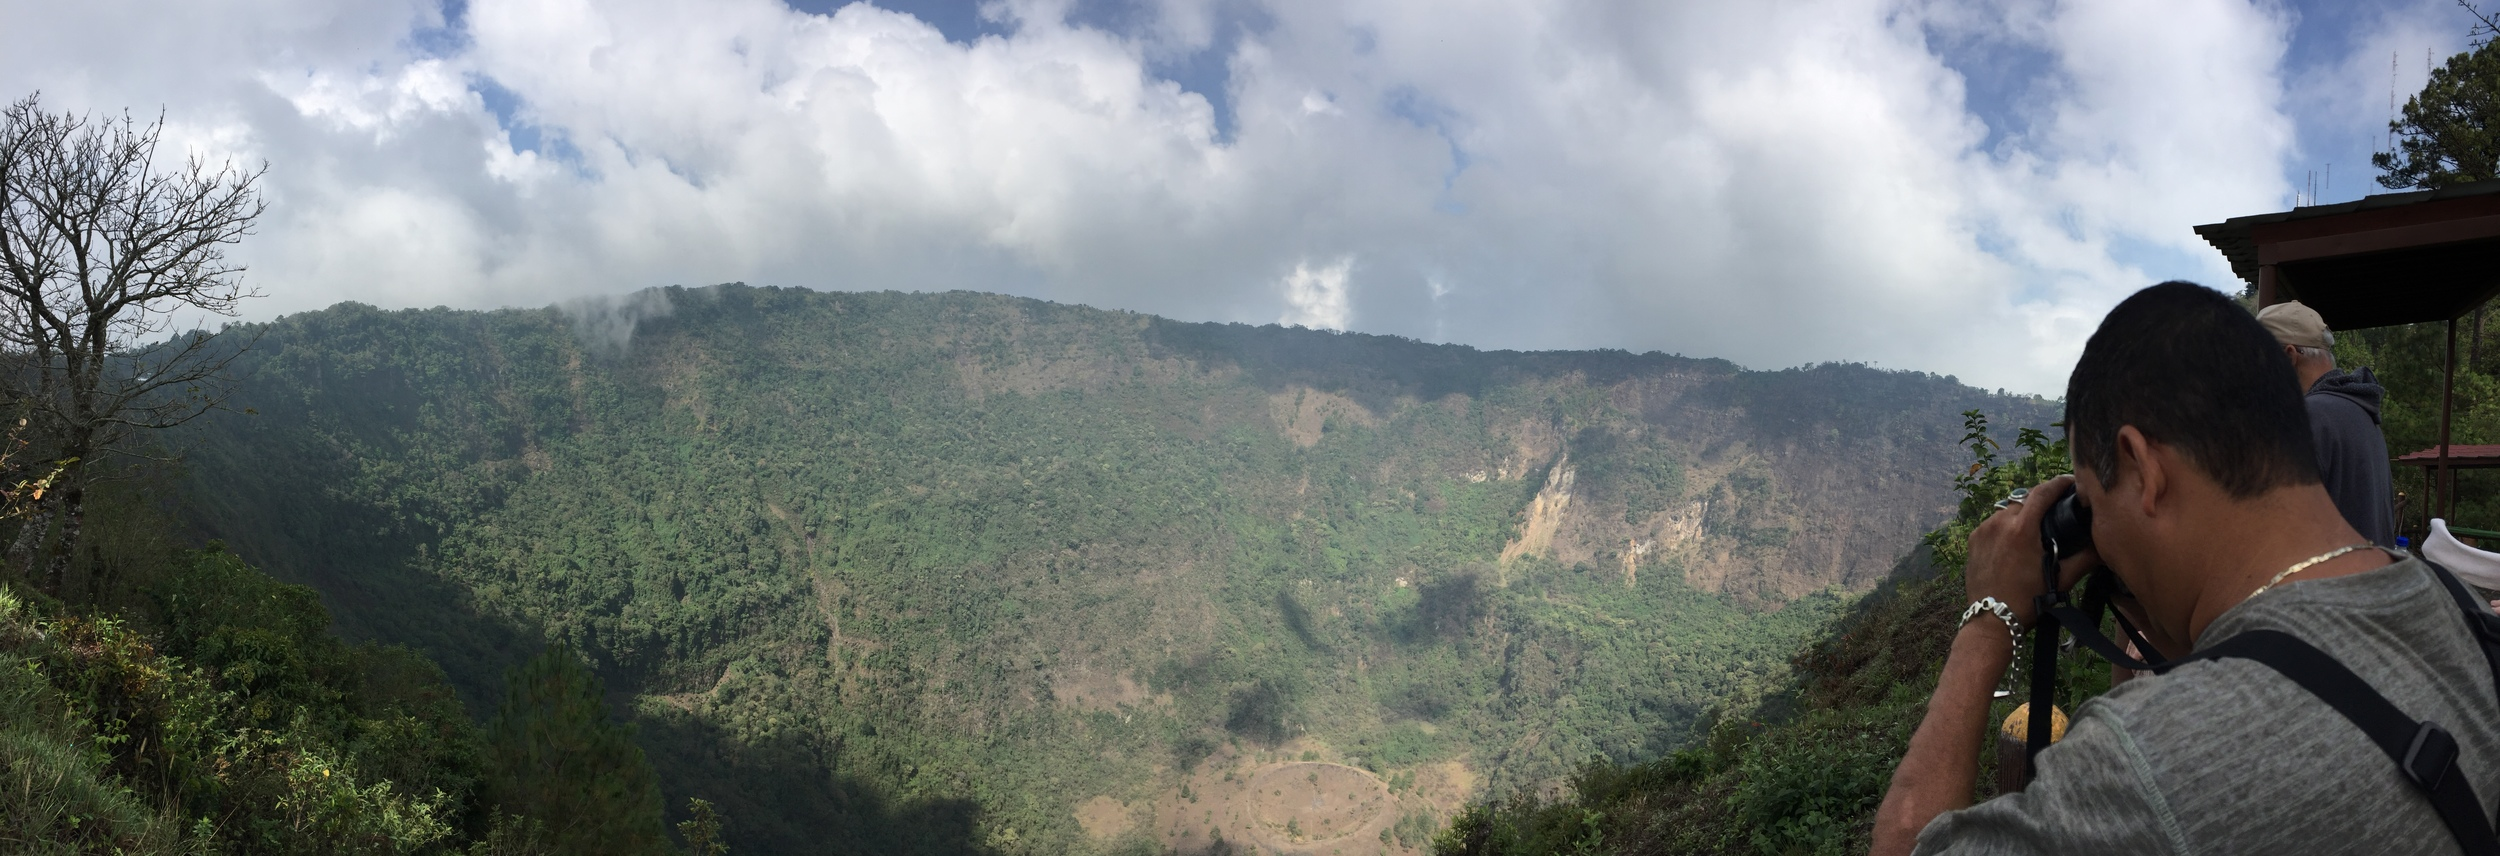 Looking out over the huge caldera of Quetzaltepec, an active volcano near San Salvador. This caldera known as El Boqueron (big mouth) used to hold a giant lake, which was blown away during the last eruption in 1917.